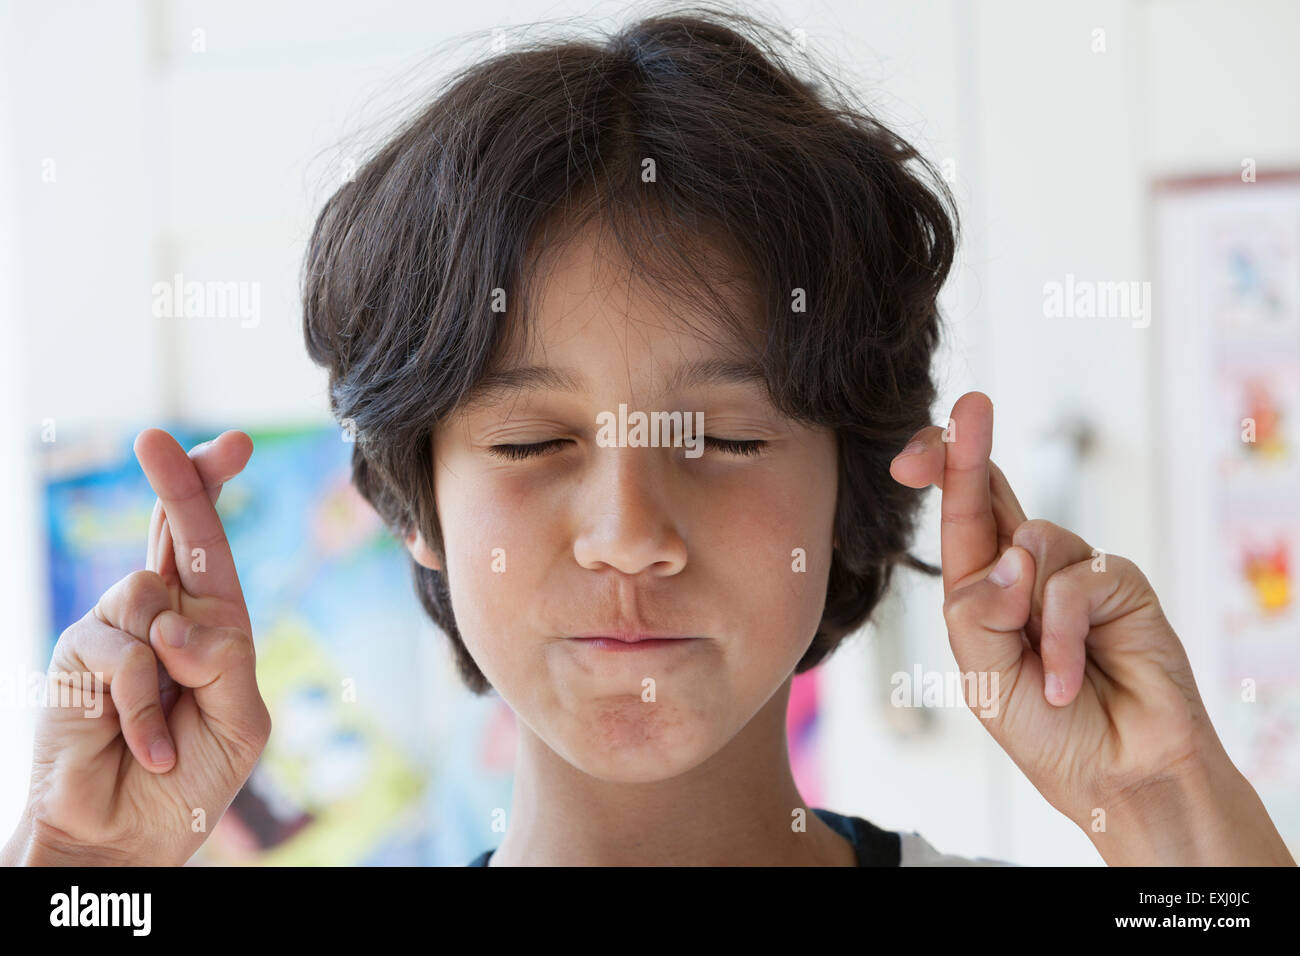 Teenage boy crossing his fingers with eyes closed - Stock Image